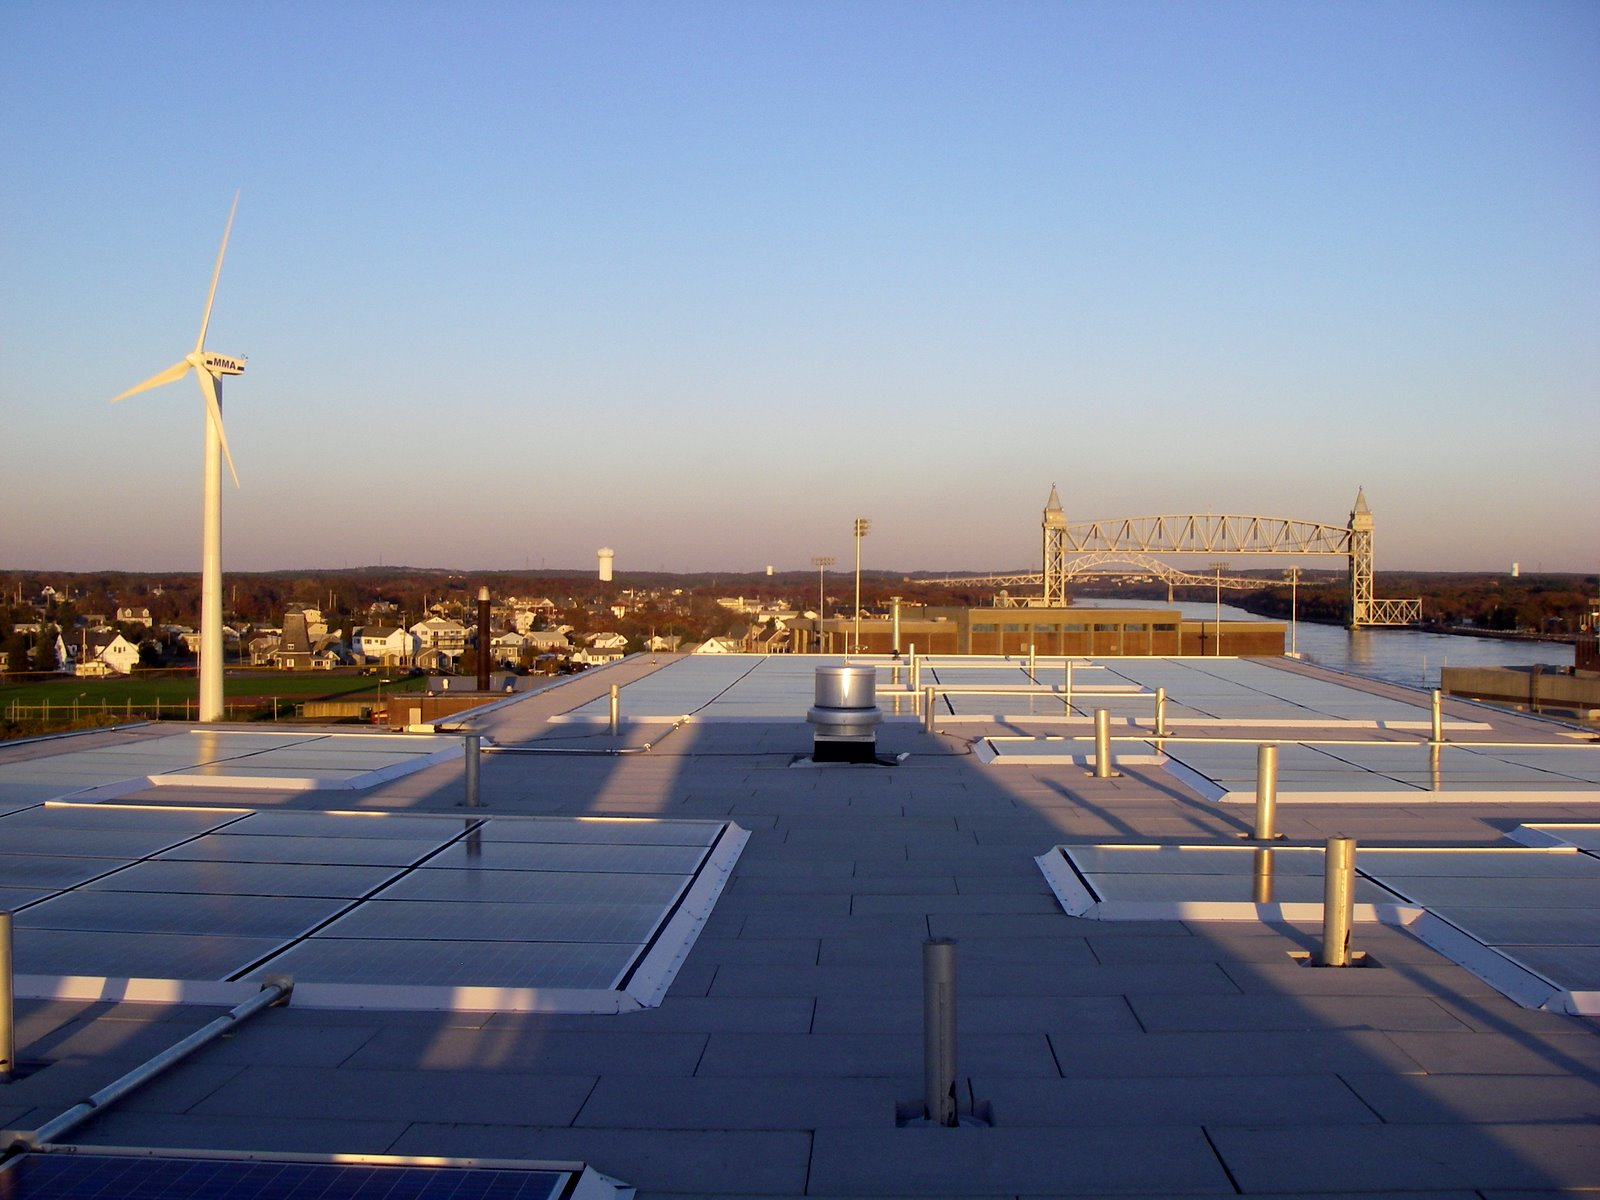 Solar panels and the wind turbine